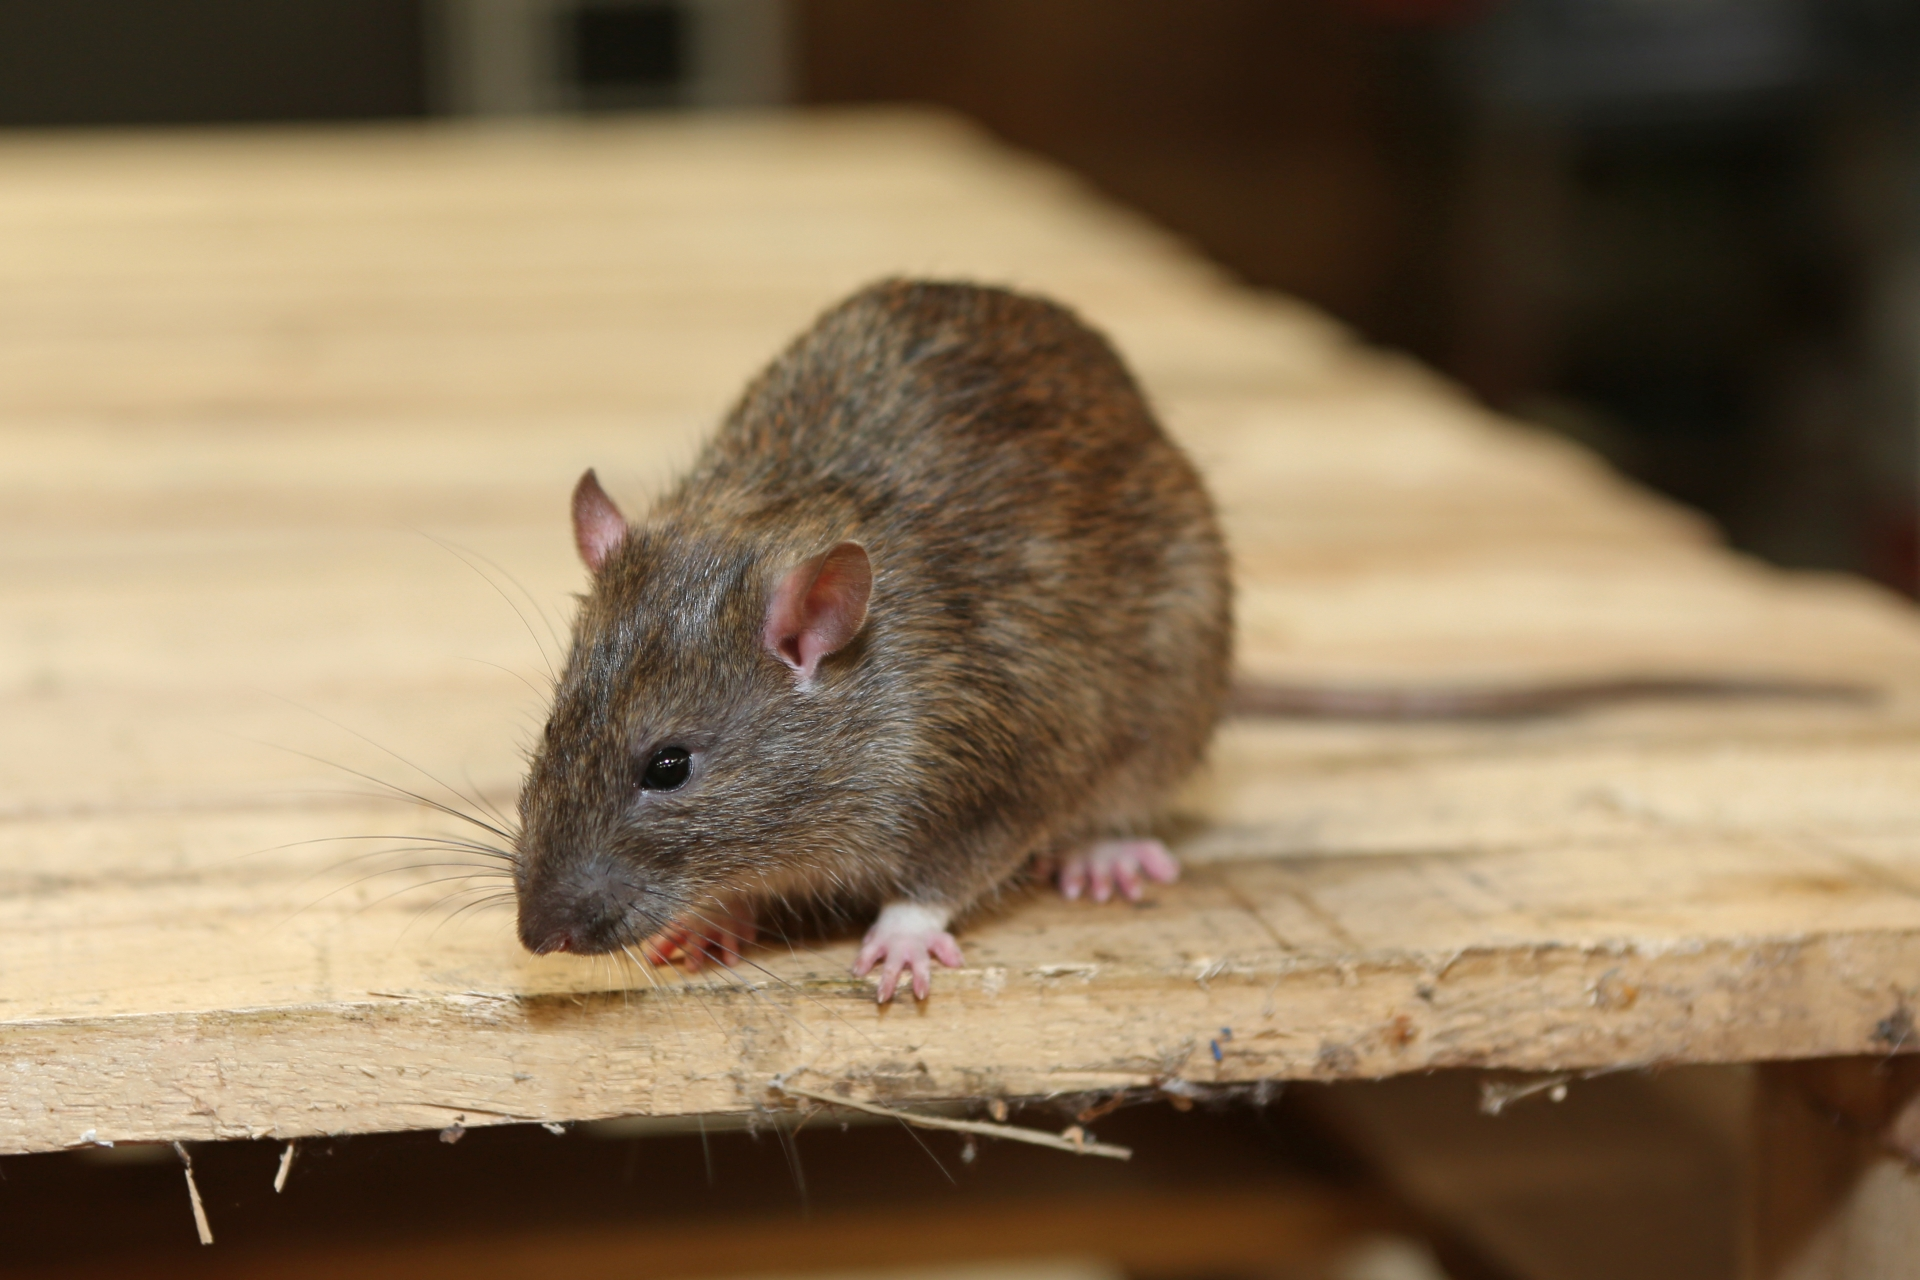 Rat extermination, Pest Control in Earlsfield, SW18. Call Now 020 8166 9746